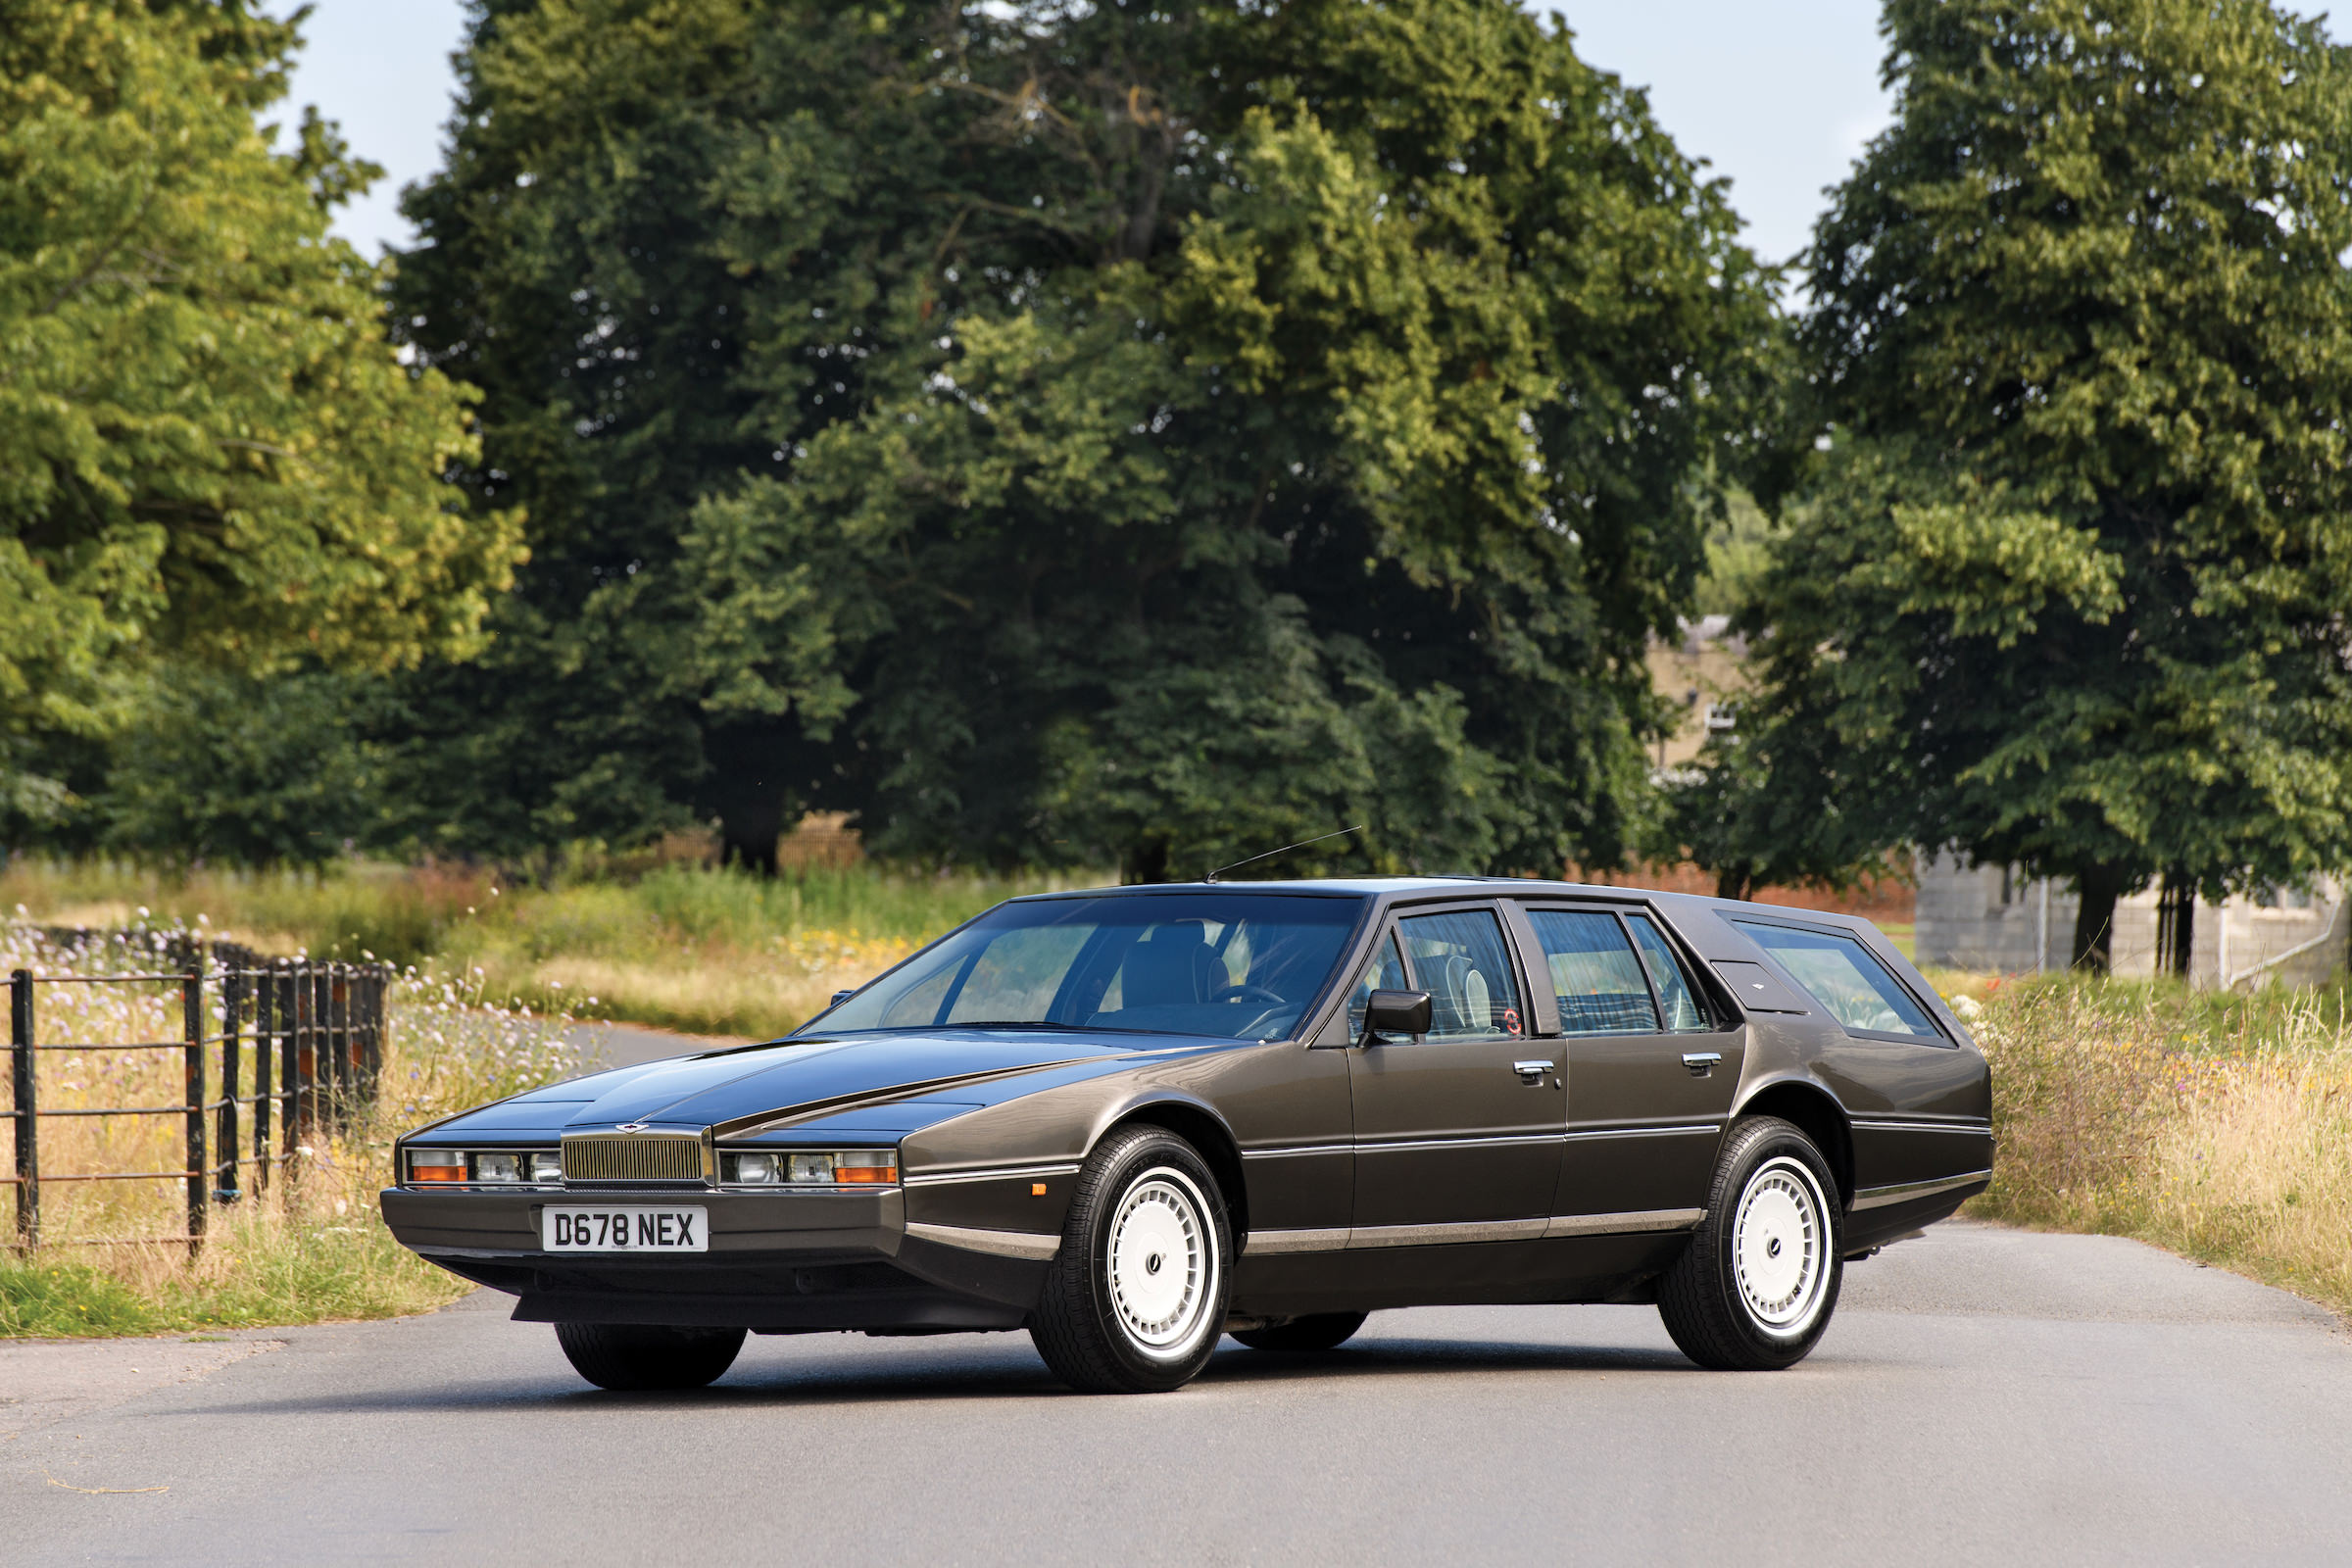 A One Off Aston Martin Lagonda Shooting Brake Designed By A Swede